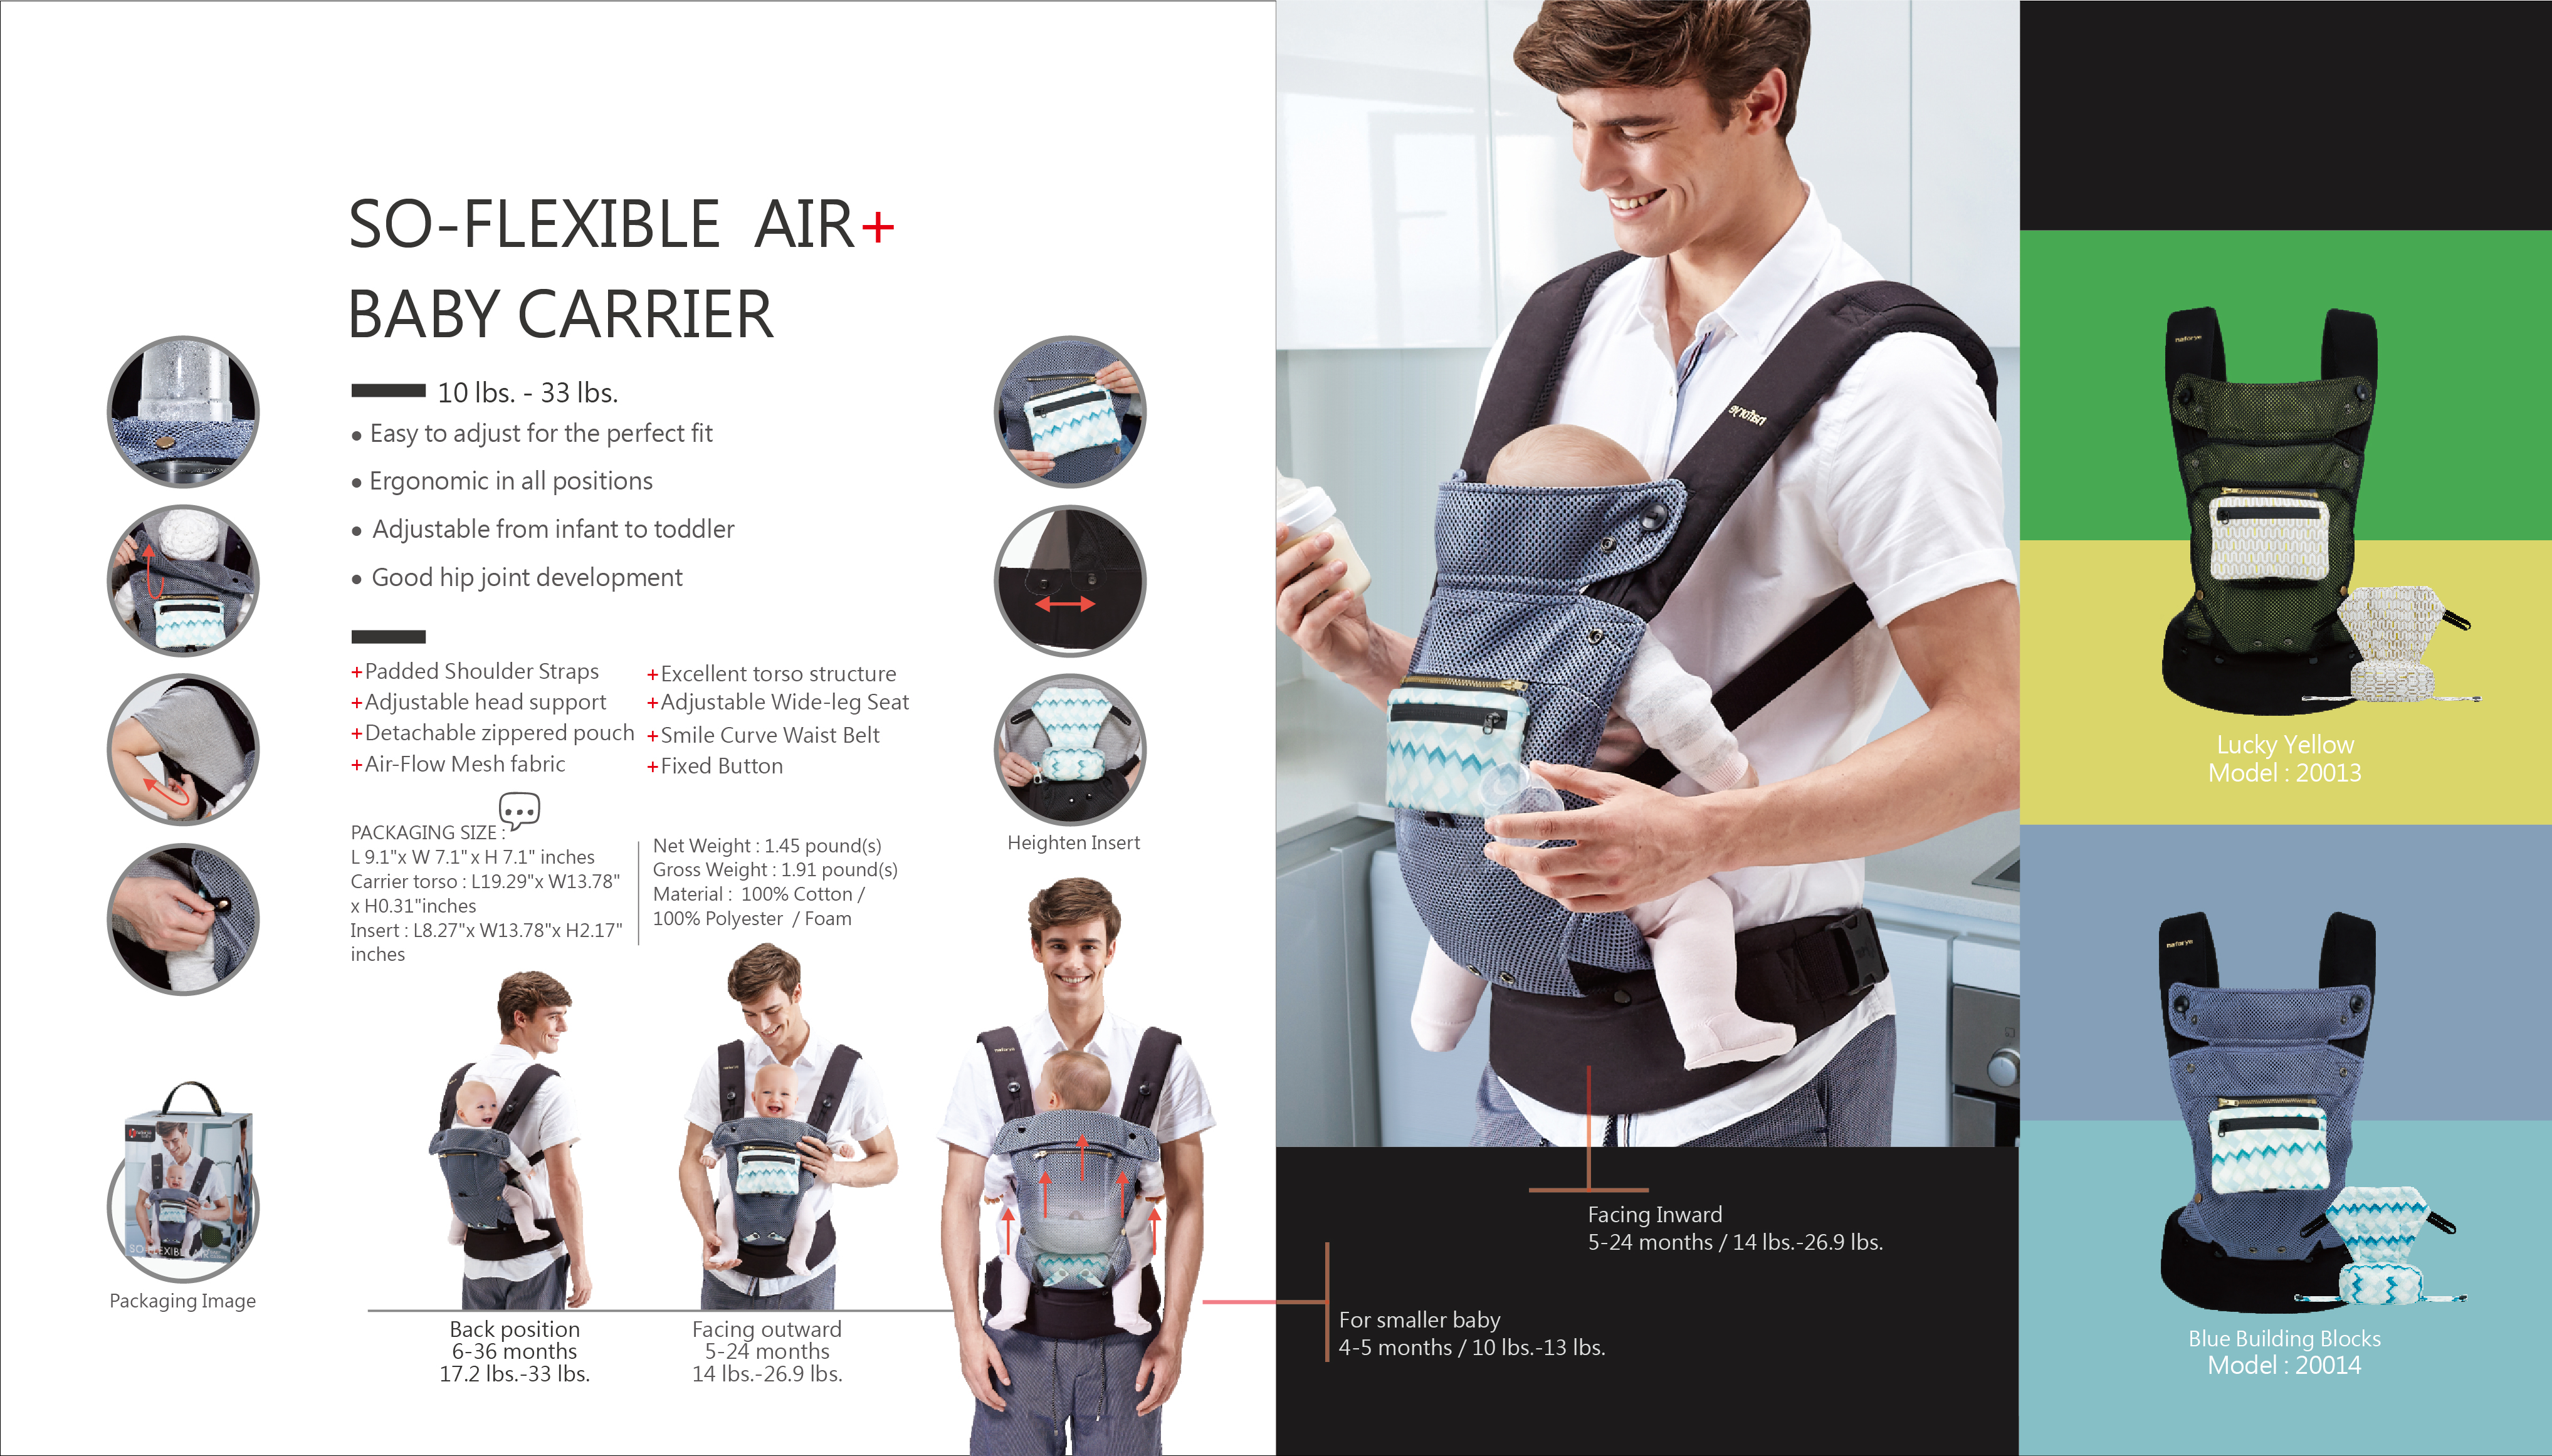 So-Flexible AIR+ Baby carrier